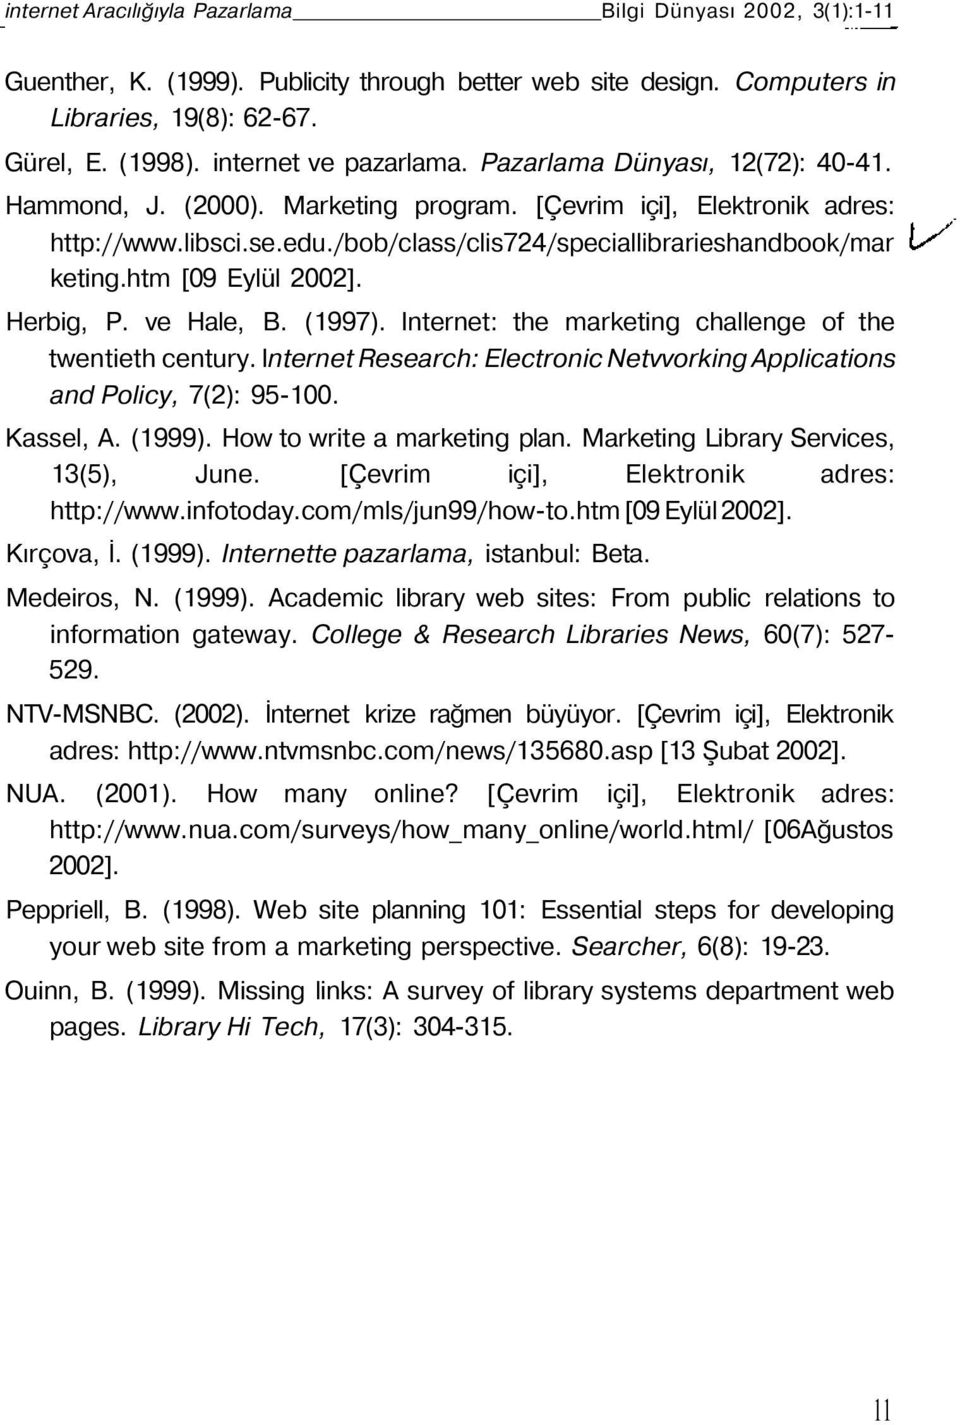 /bob/class/clis724/speciallibrarieshandbook/mar keting.htm [09 Eylül 2002]. Herbig, P. ve Hale, B. (1997). Internet: the marketing challenge of the twentieth century.